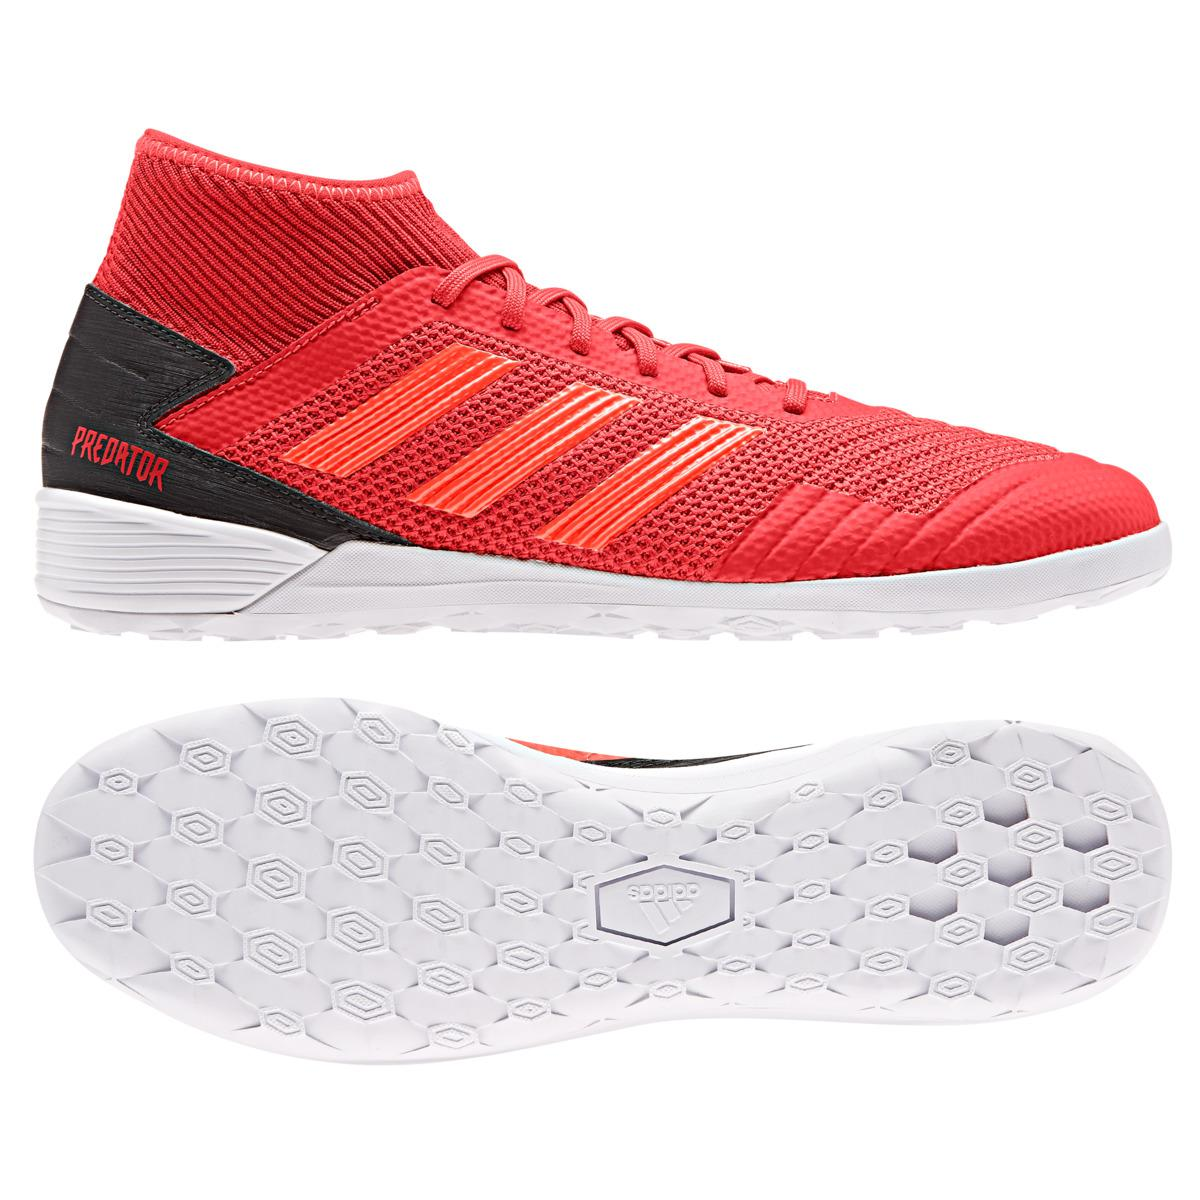 7173752f1 ... reputable site d119a 7ec30 Adidas - Predator 19.3 In Indoor Football  Boots for Men - Lyst